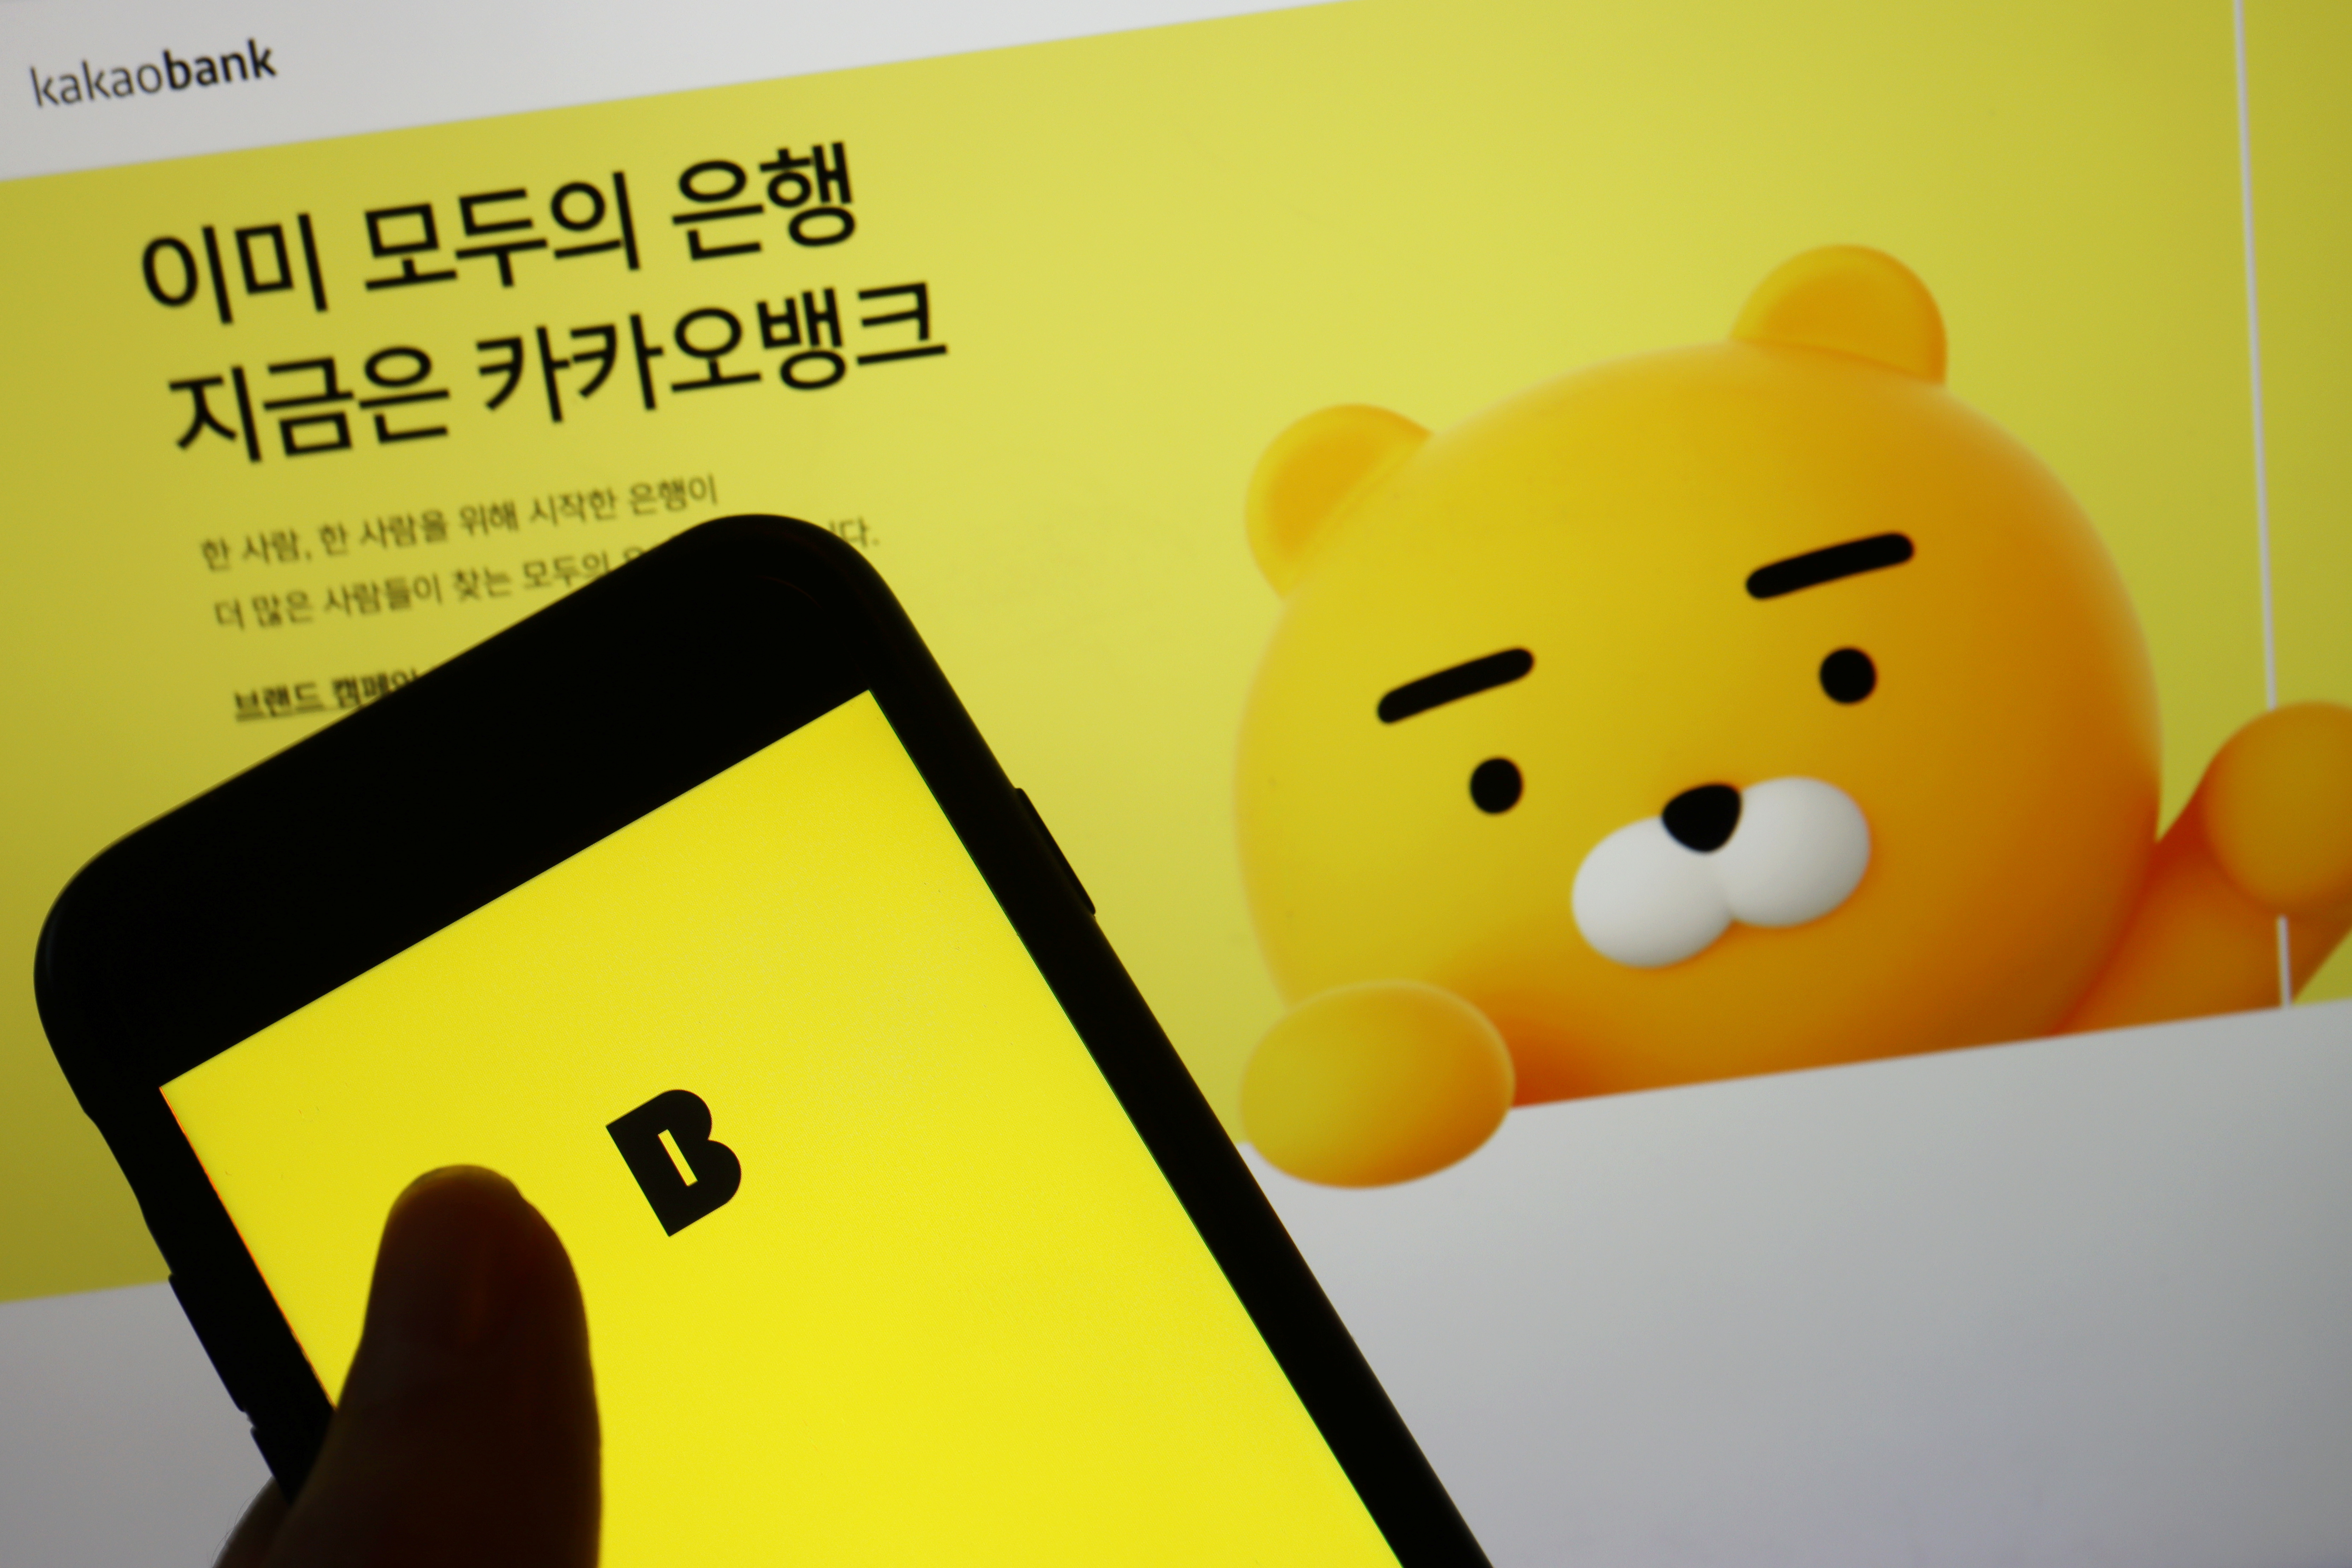 The Kakao Bank app is seen on a mobile phone screen displayed in front of the South Korean digital lender's website in this illustration picture taken August 6, 2021. REUTERS/Florence Lo/Illustration